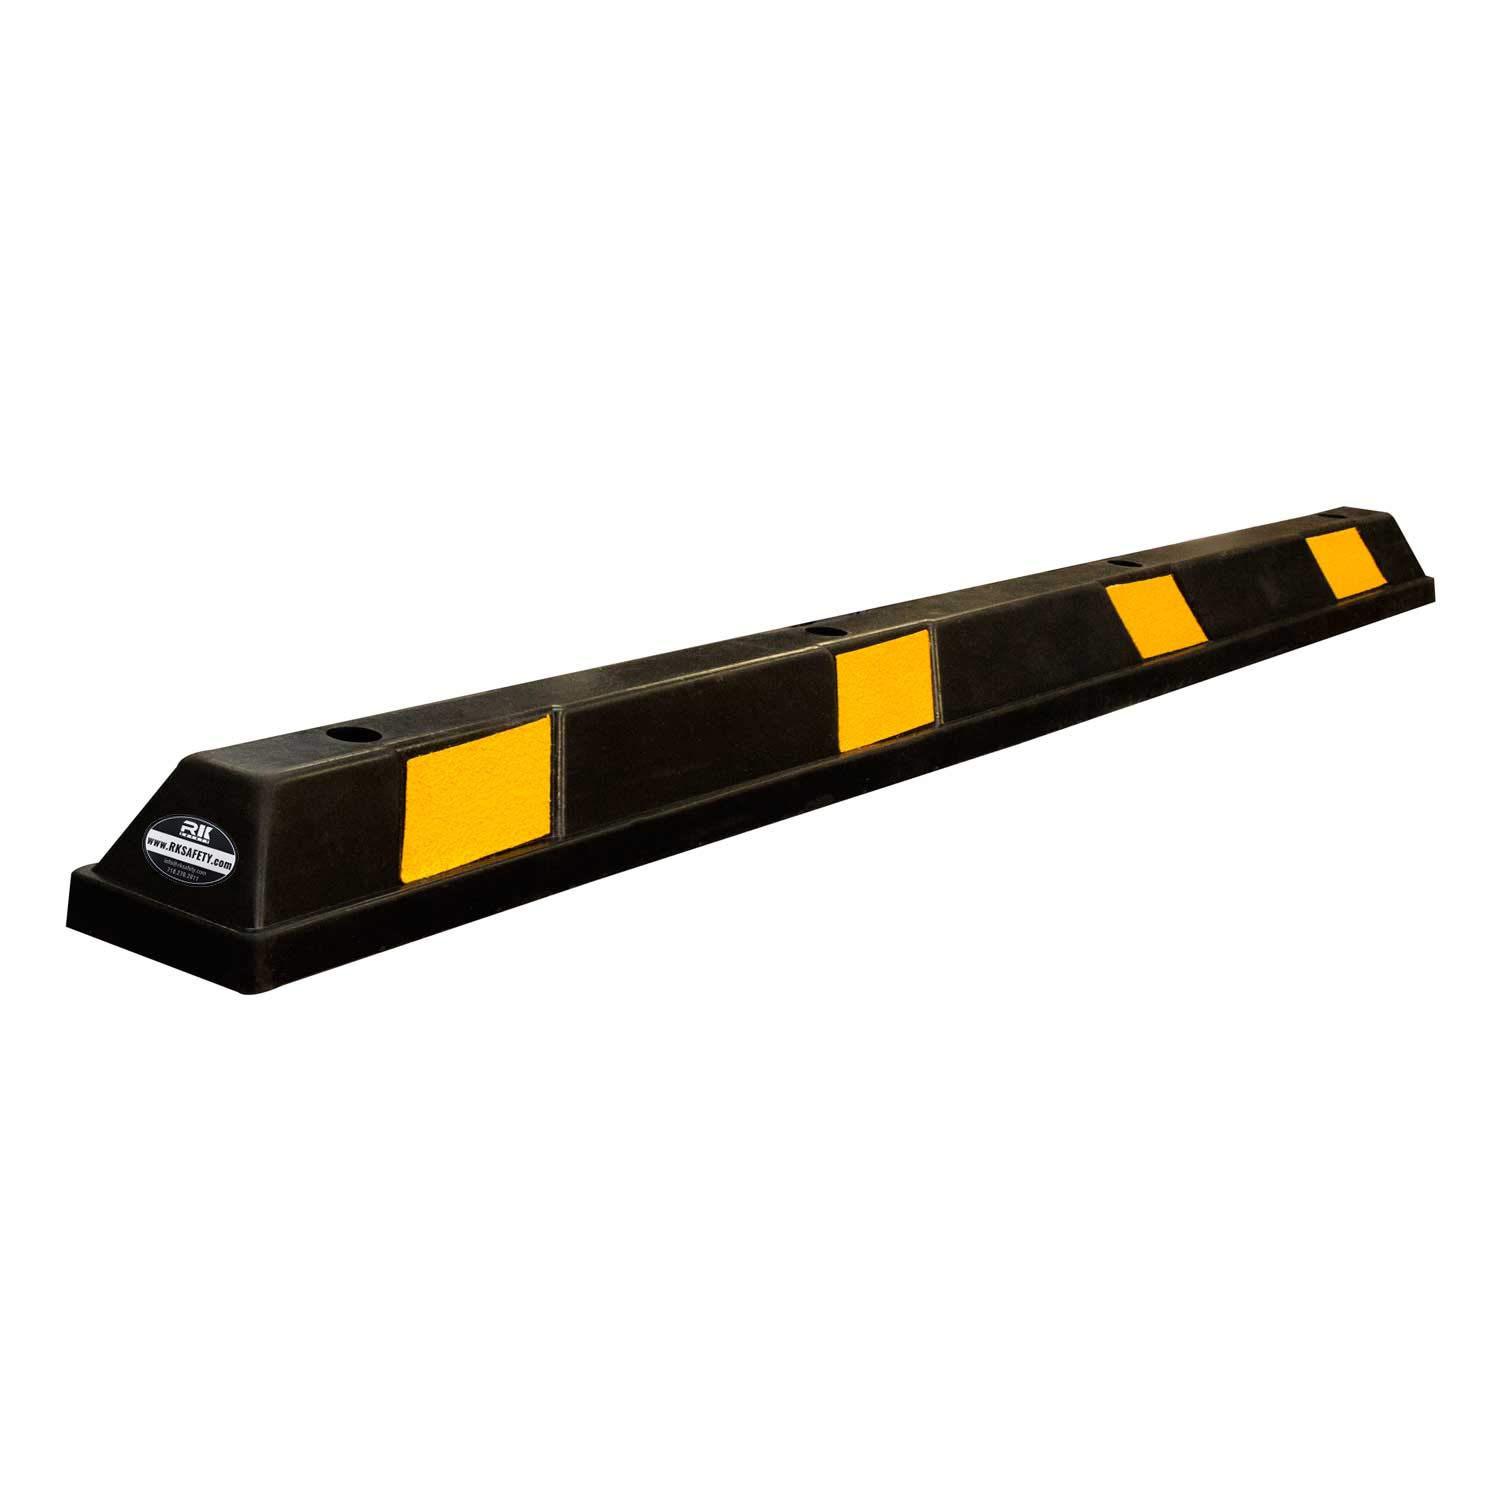 RK-BP72 Heavy Duty Rubber Parking Curb, Parking Block, 72 -Inch for Car, Truck, RV and Trailer Stop Aid